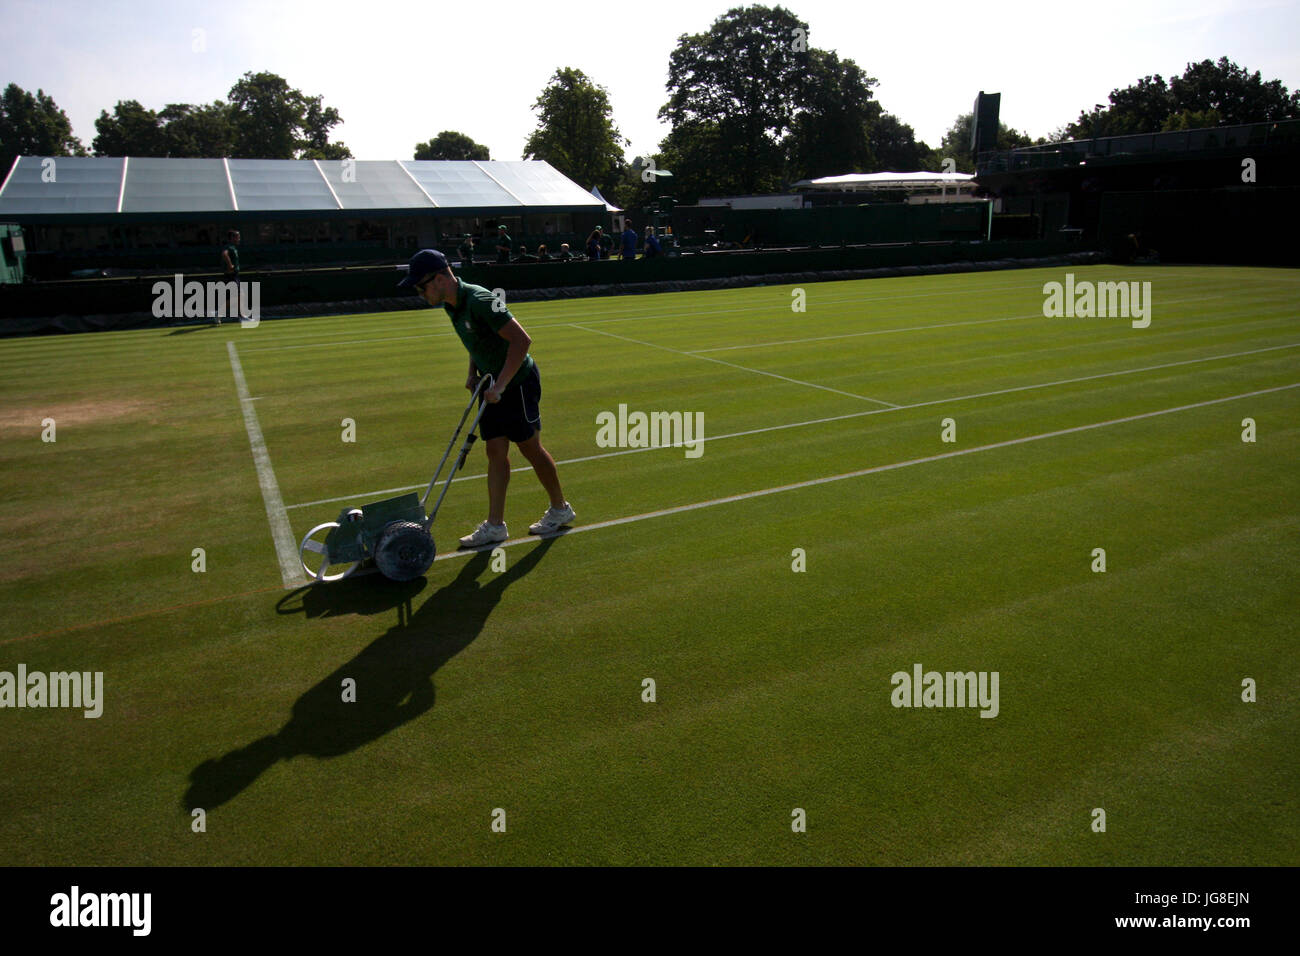 London, UK. 04th July, 2017. A bellboy chalks the line of one of the outside courts at the All England Lawn Tennis - Stock Image